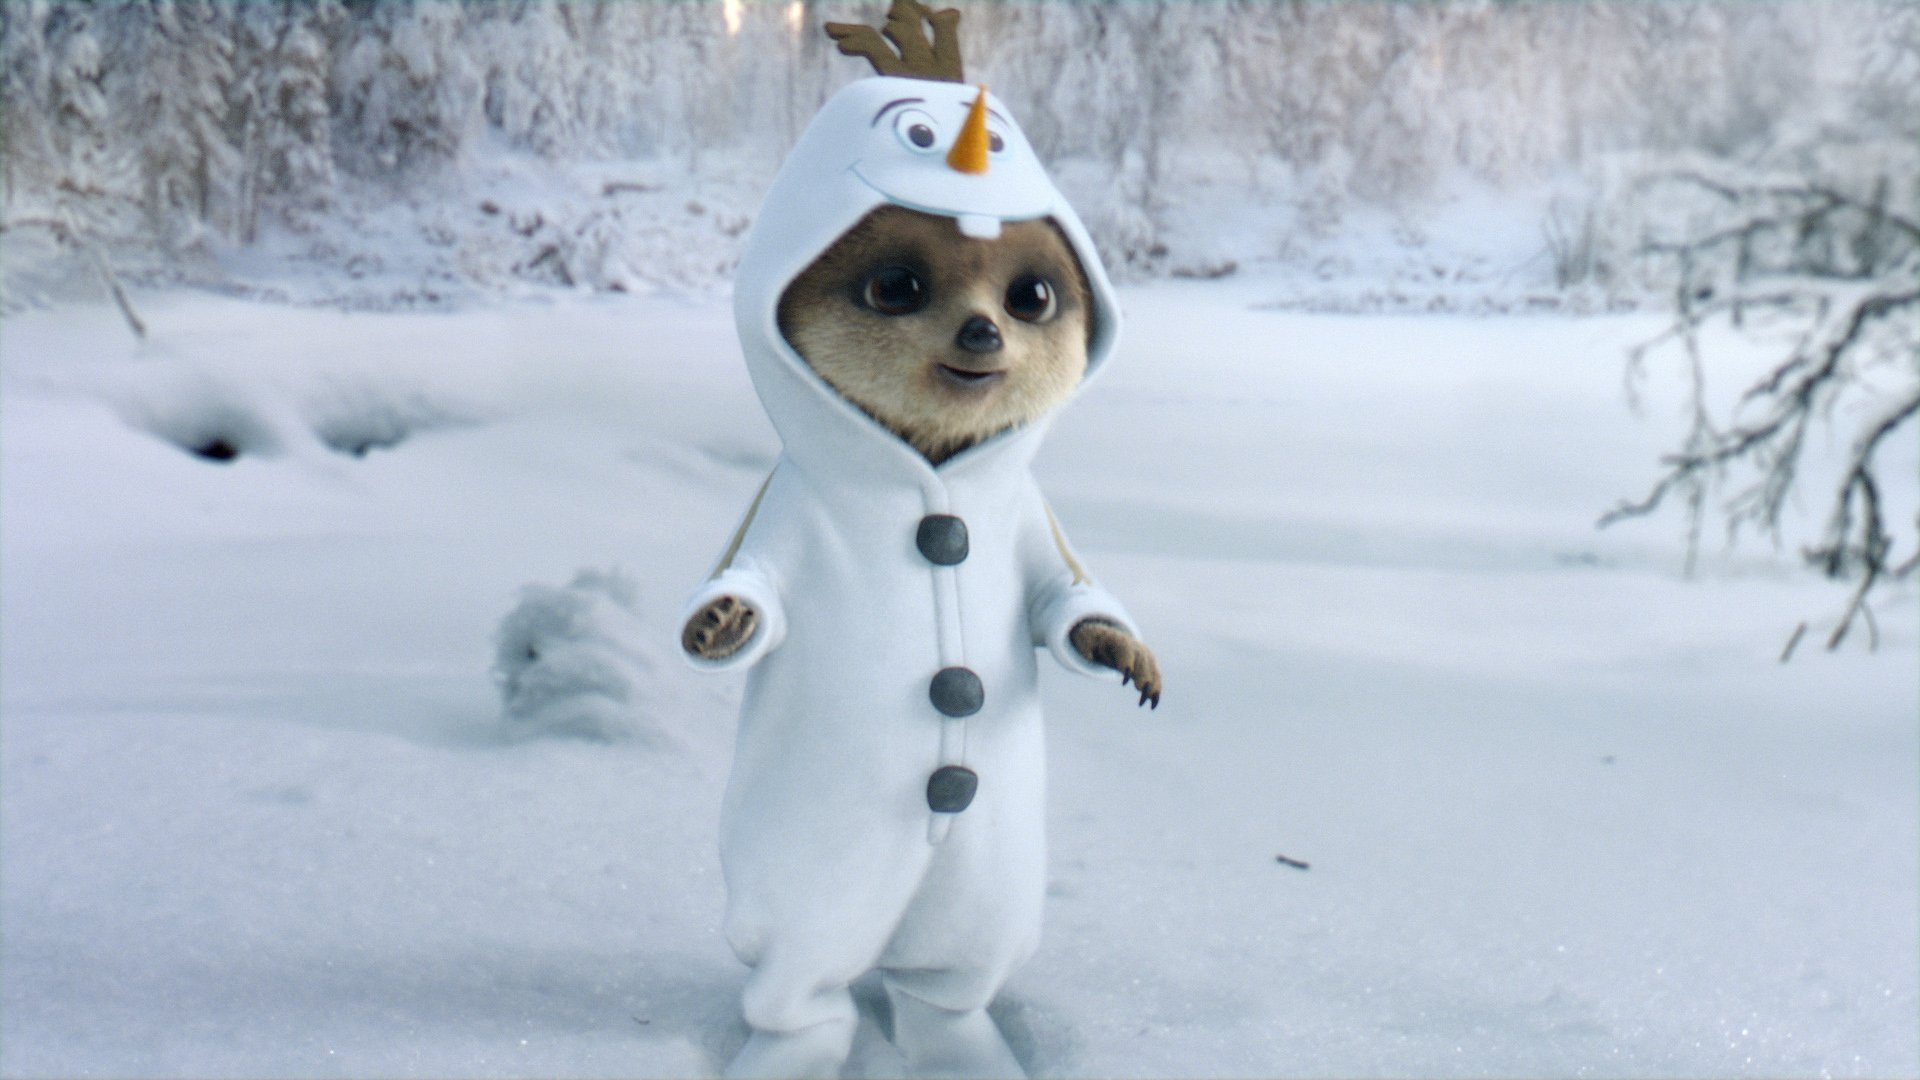 Undated handout photo issued by comparethemarket.com of a still from their new Disney Frozen themed Christmas advert staring meerpup favourite Oleg and new friend Ayana. PRESS ASSOCIATION Photo. Issue date: Thursday December 22, 2016. The ad airs for the first time on Christmas Day on ITV from 8pm. See PA story SHOWBIZ Meerkats. Photo credit should read: comparethemarket.com/PA Wire NOTE TO EDITORS: This handout photo may only be used in for editorial reporting purposes for the contemporaneous illustration of events, things or the people in the image or facts mentioned in the caption. Reuse of the picture may require further permission from the copyright holder.